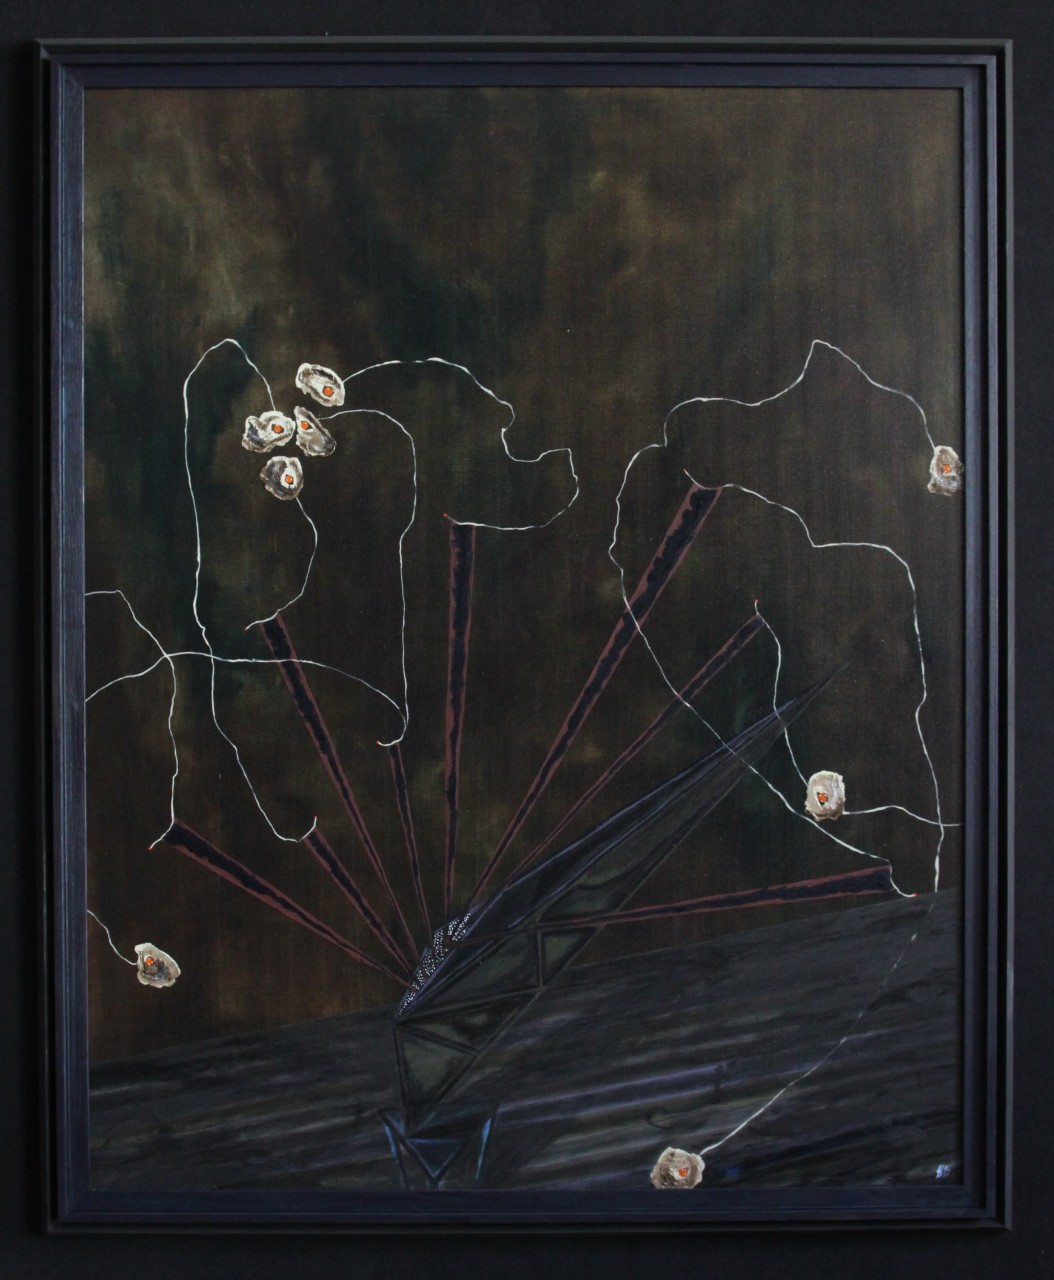 secret ground ( version 2 ), 2015, 88 x 108cm, oil on nettle